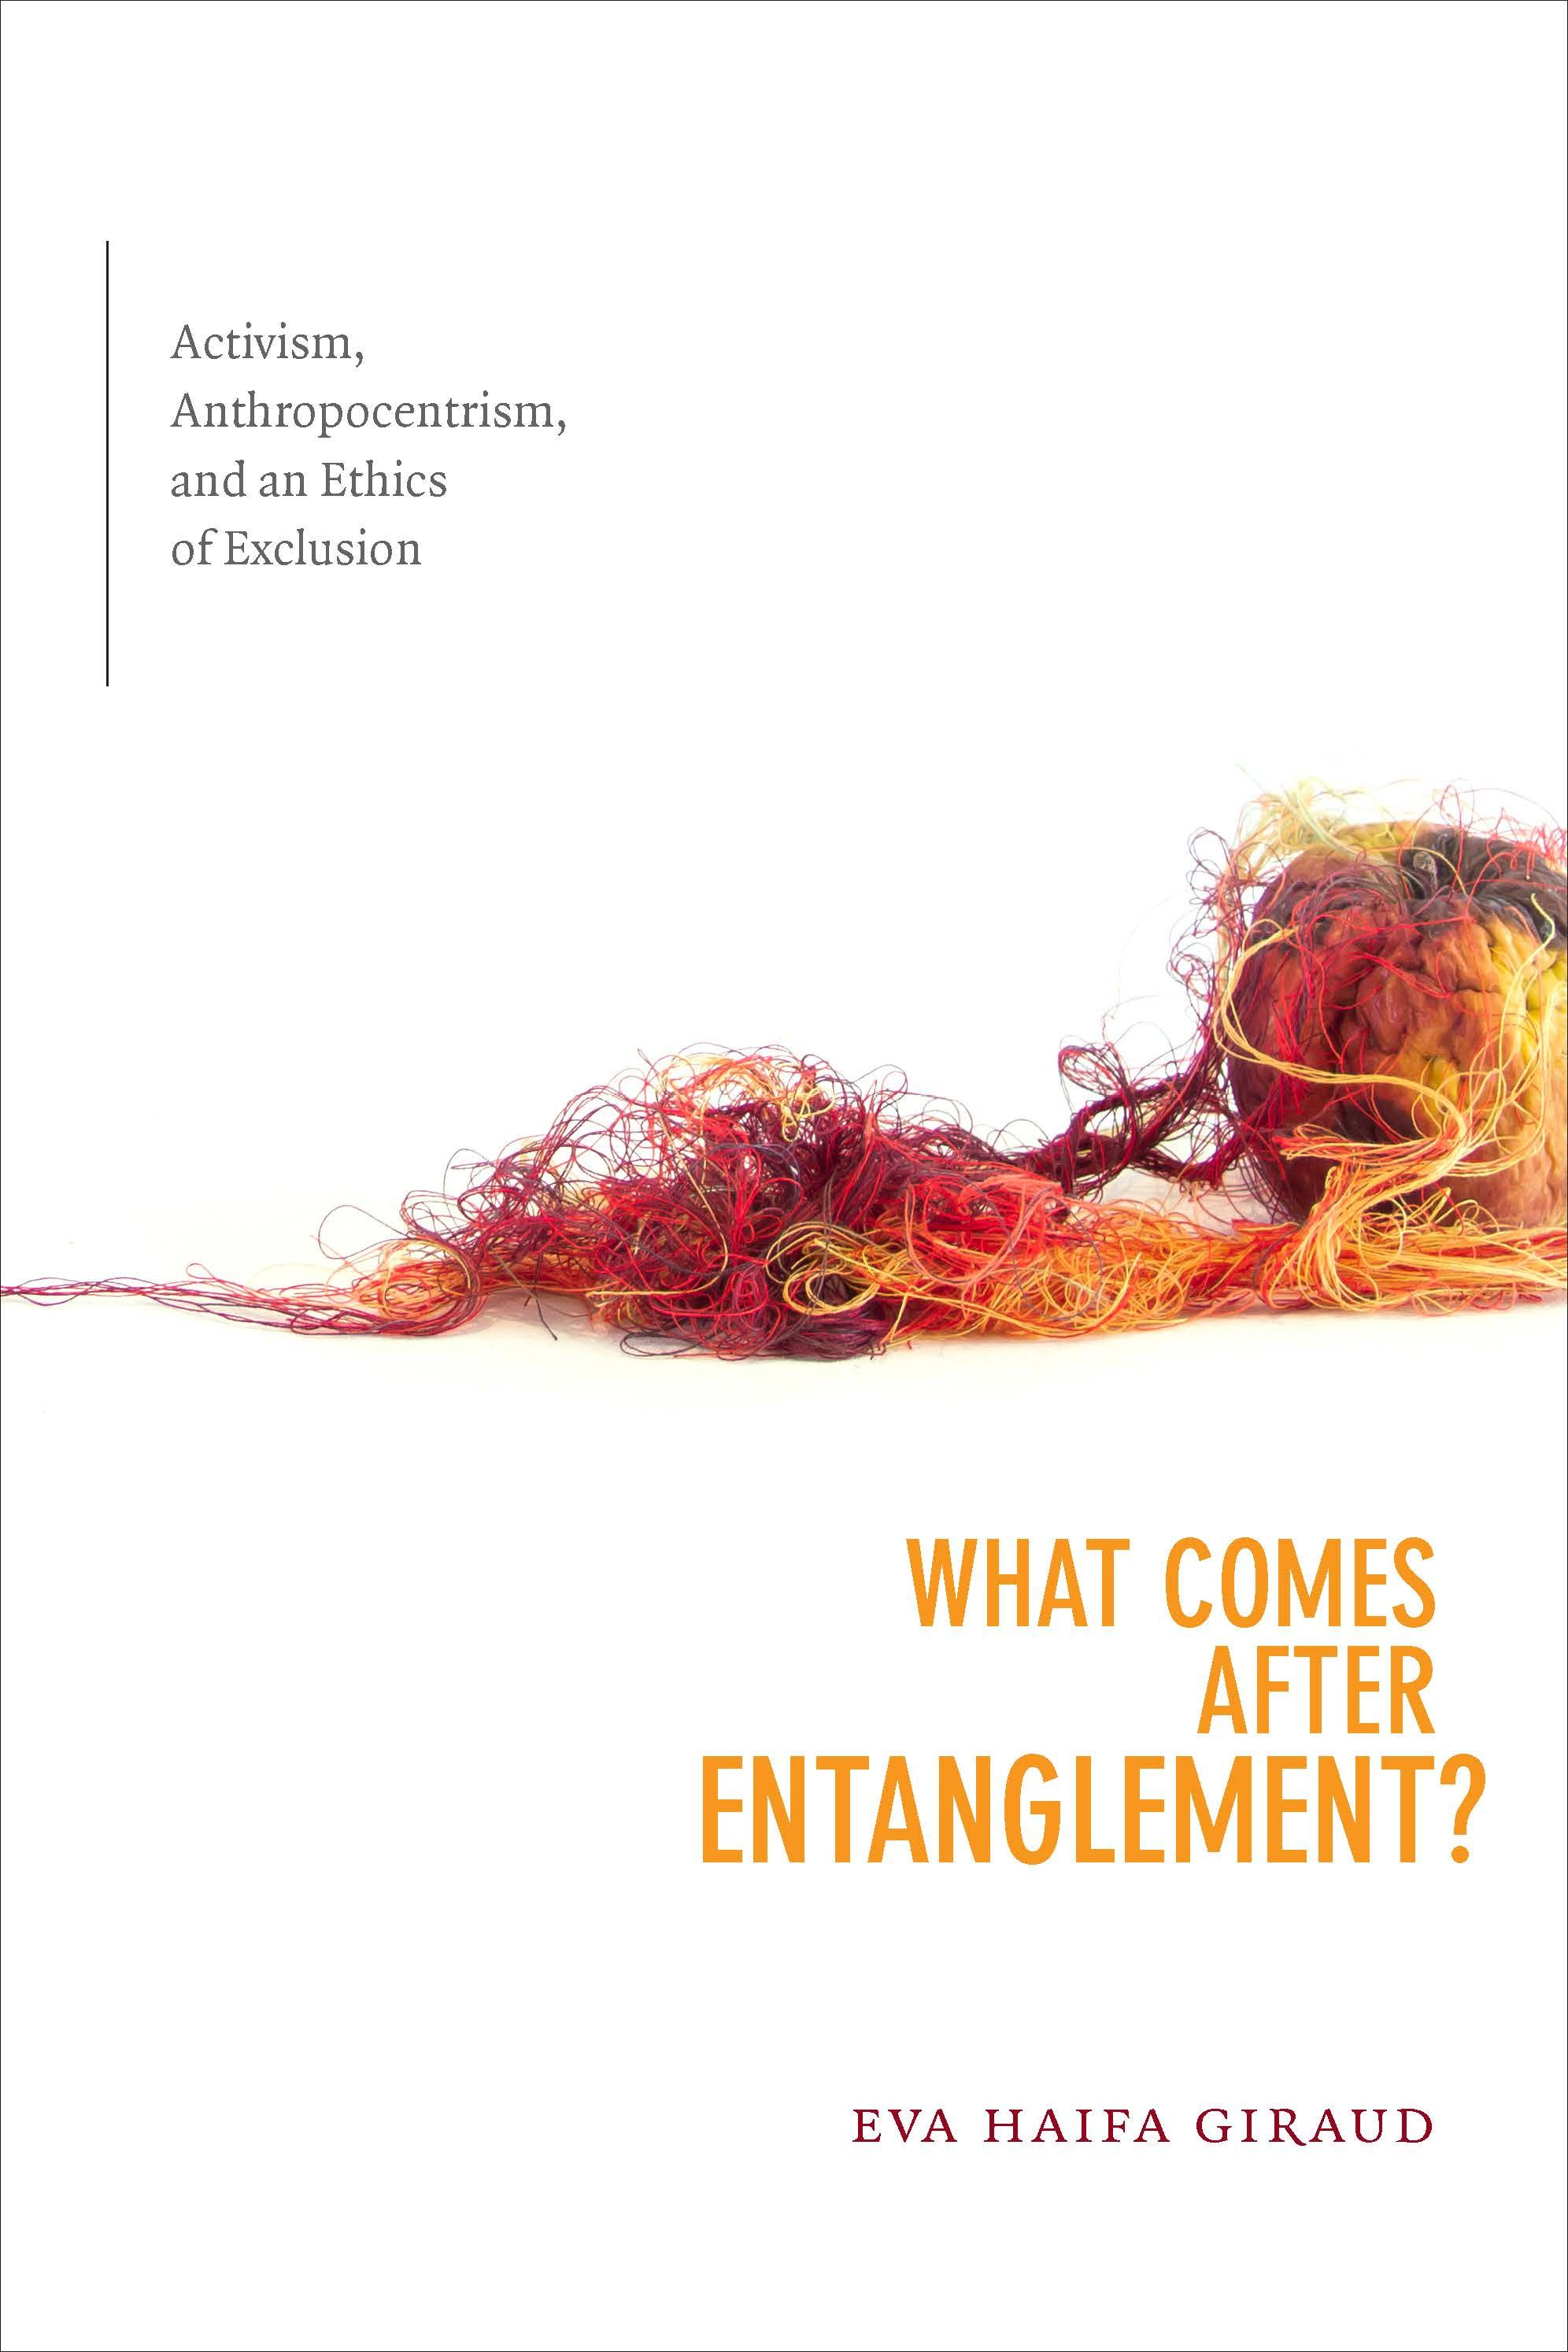 What Comes after Entanglement? by Eva Haifa Giraud   Fall